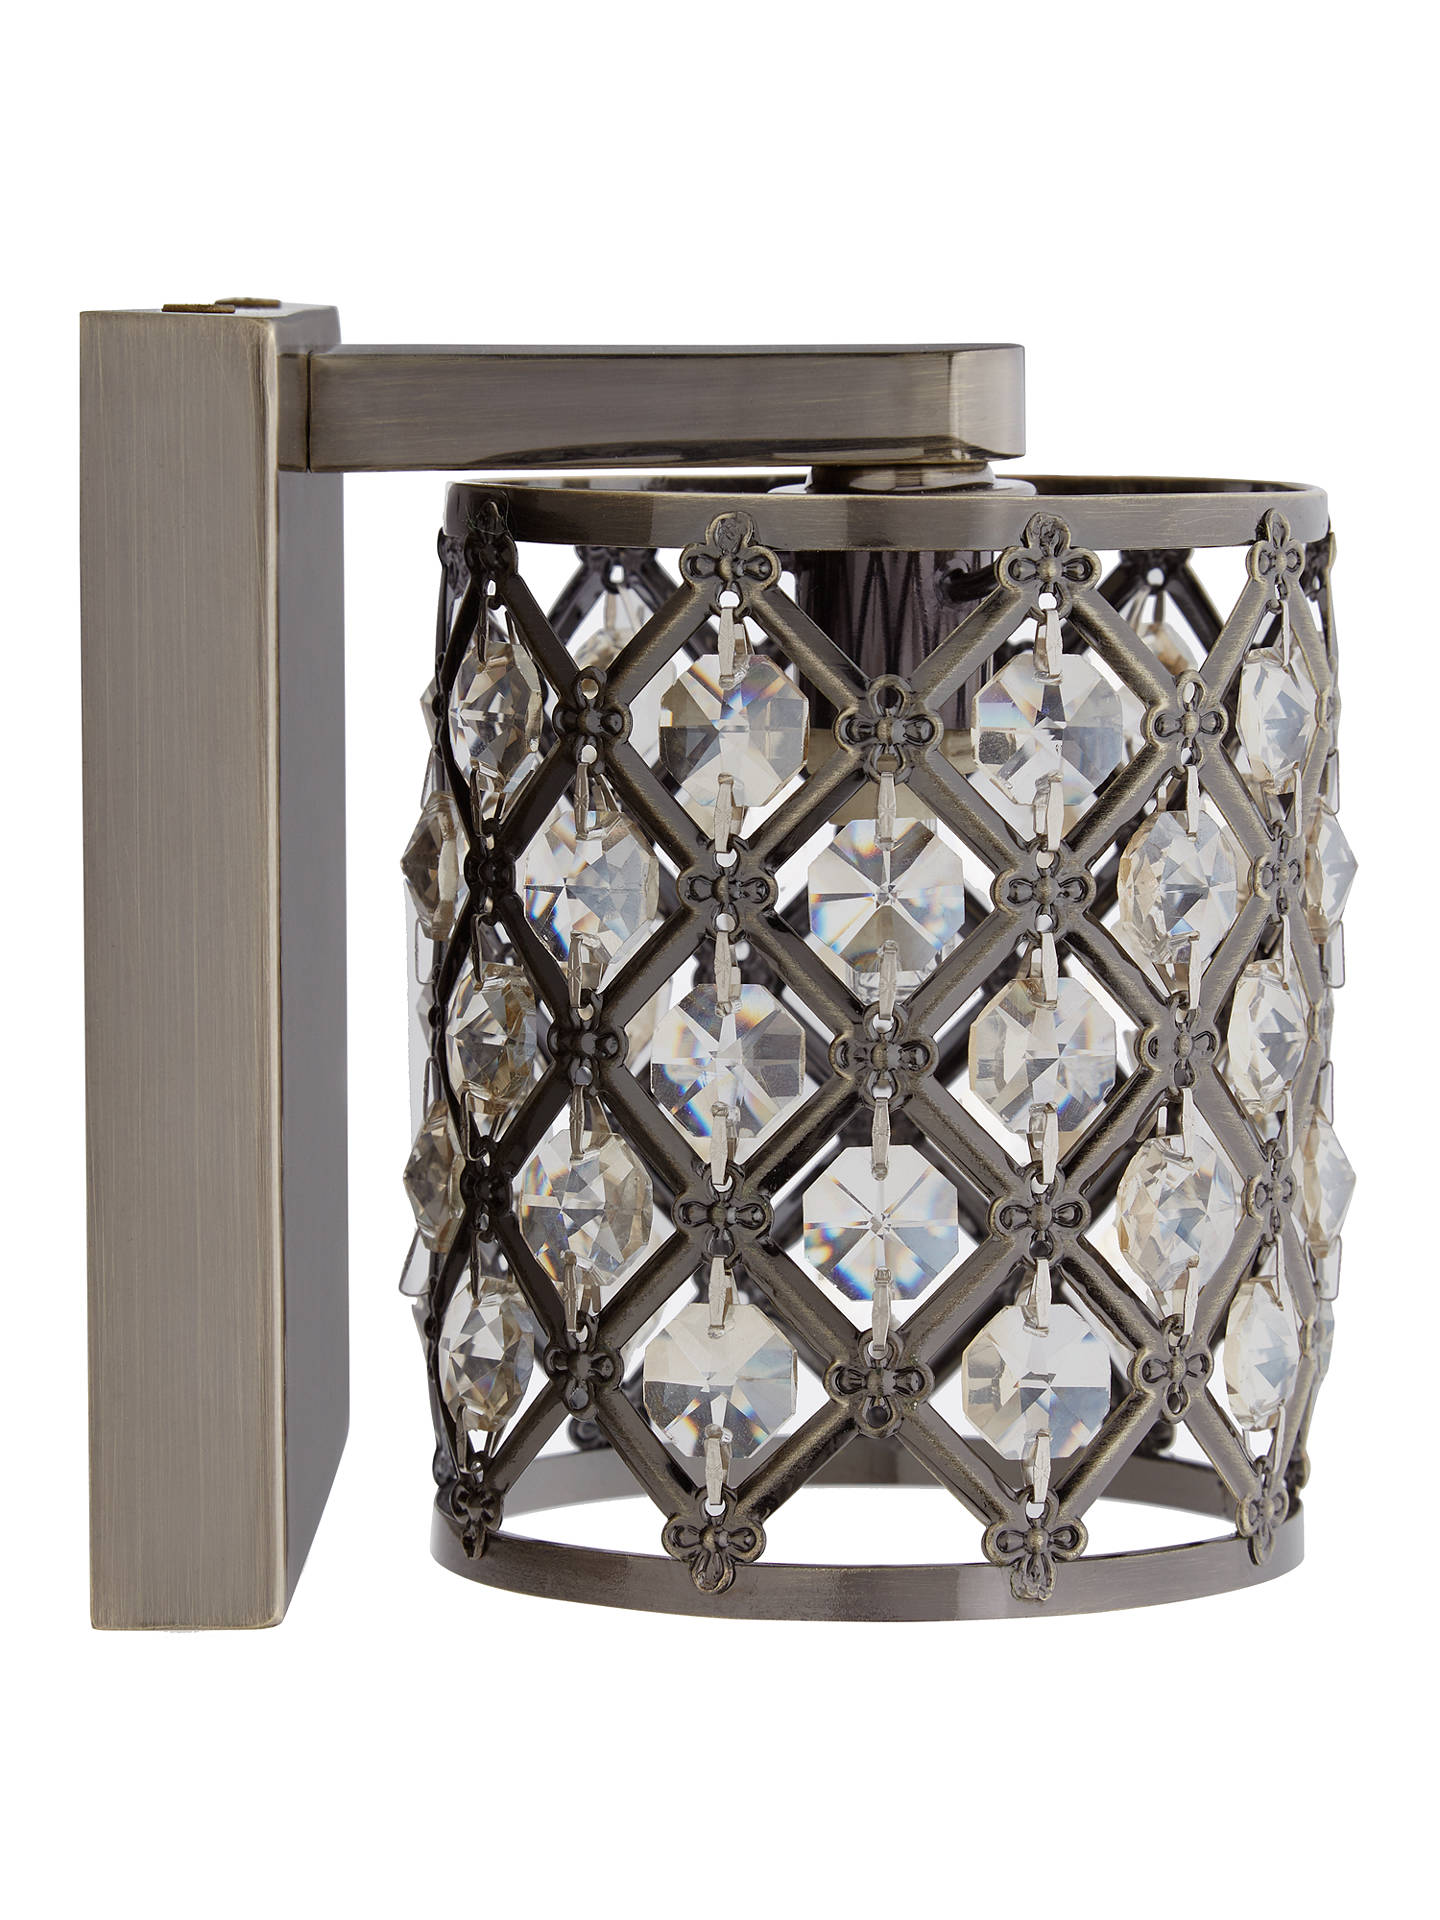 Buy John Lewis & Partners Gigi Crystal Wall Light, Antique Brass Online at johnlewis.com